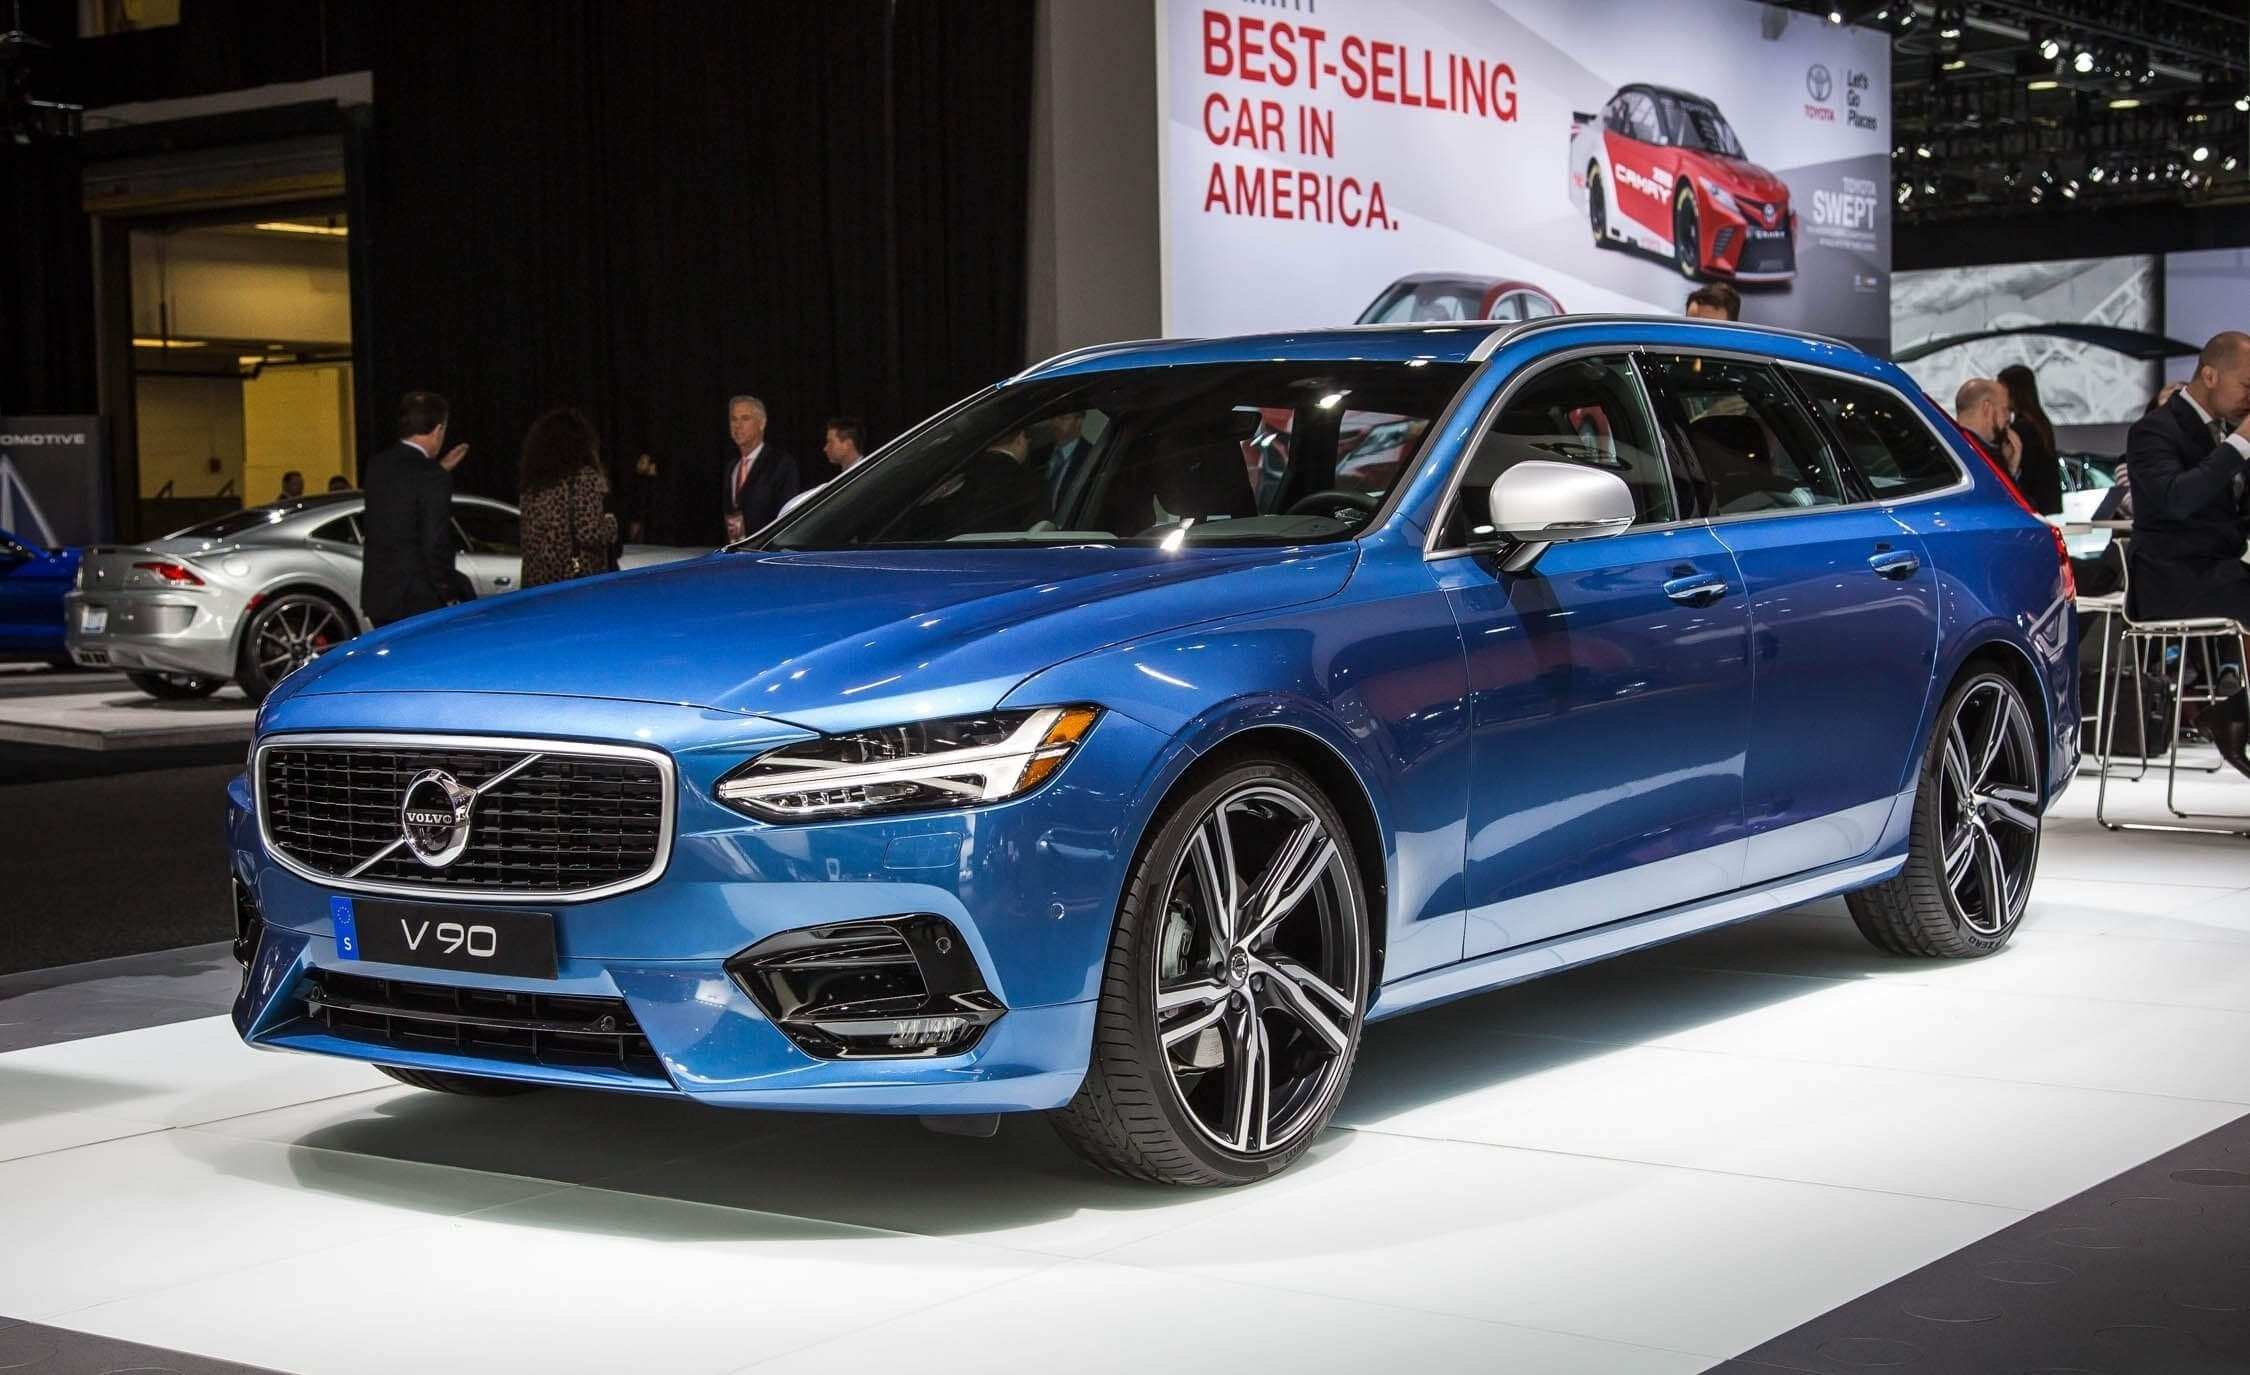 73 All New 2020 Volvo Xc70 New Generation Wagon Price And Review